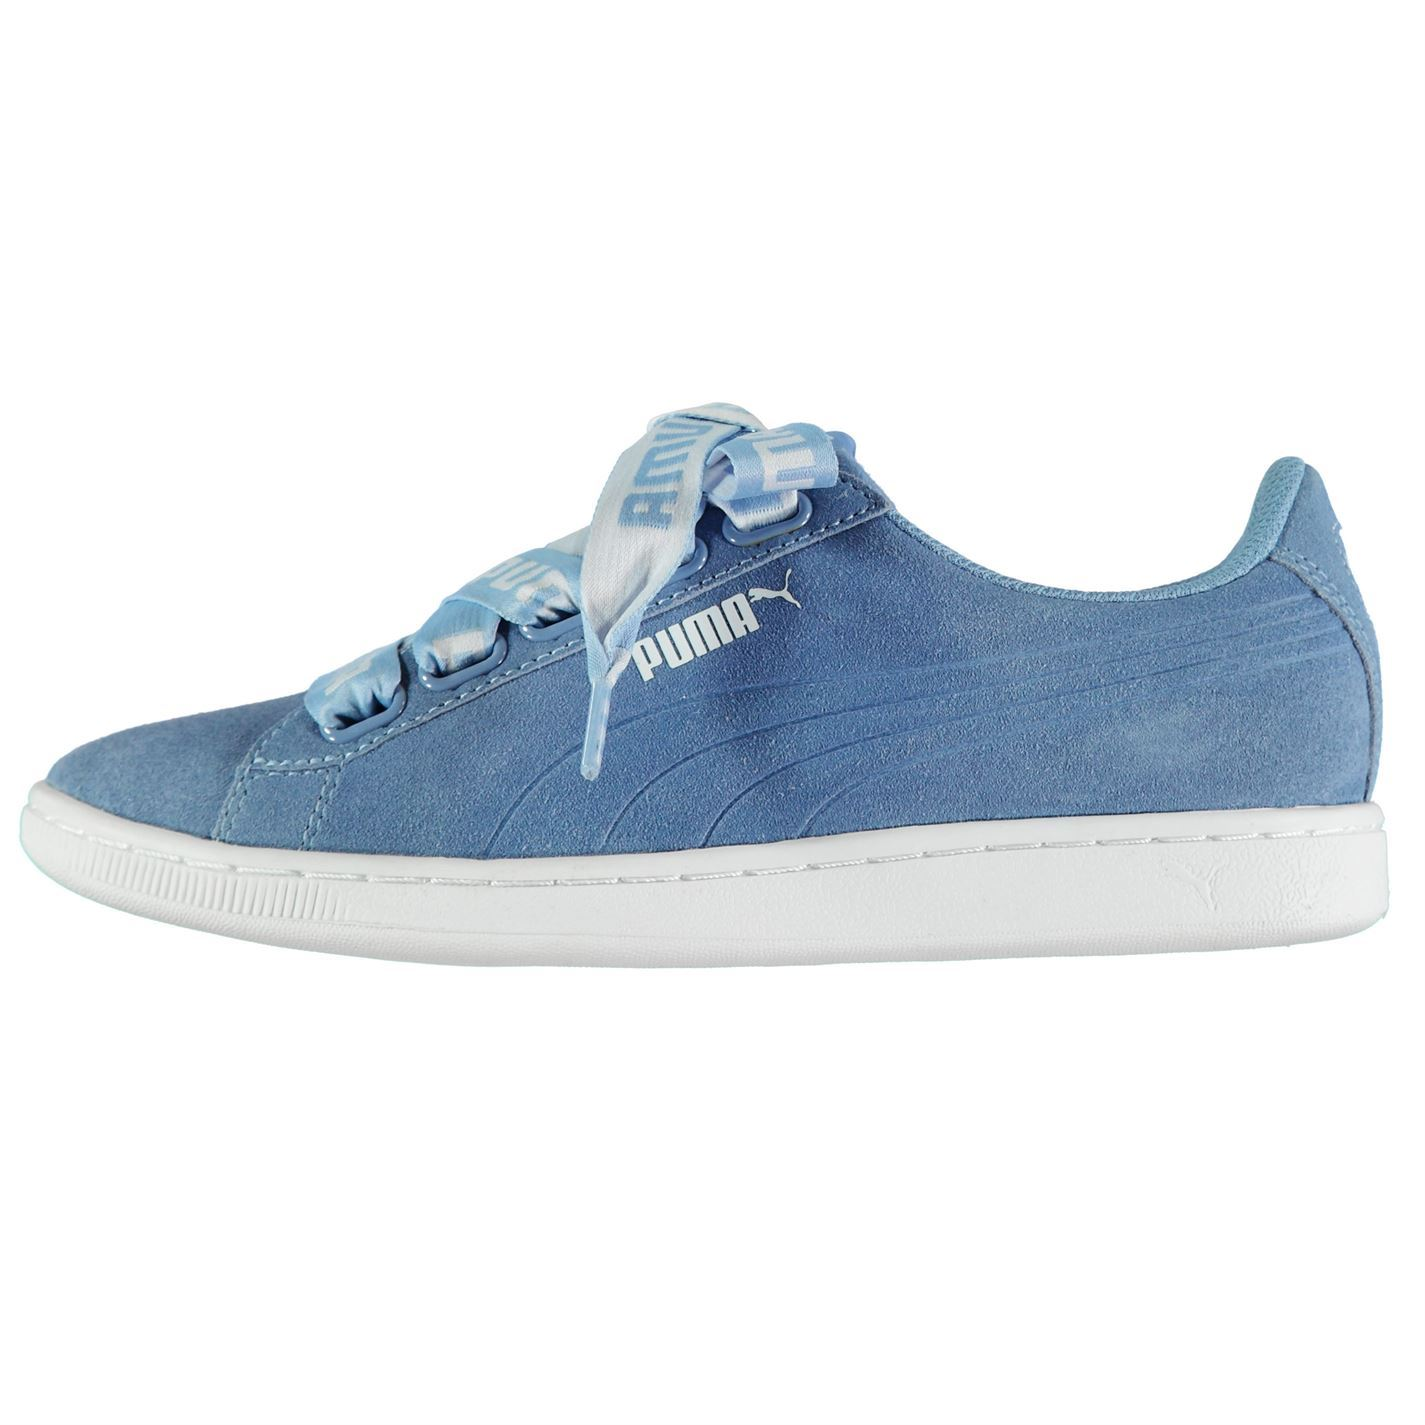 Details about Puma Vikky Ribbon Trainers Womens Blue Sports Trainers  Sneakers 5f8020d21